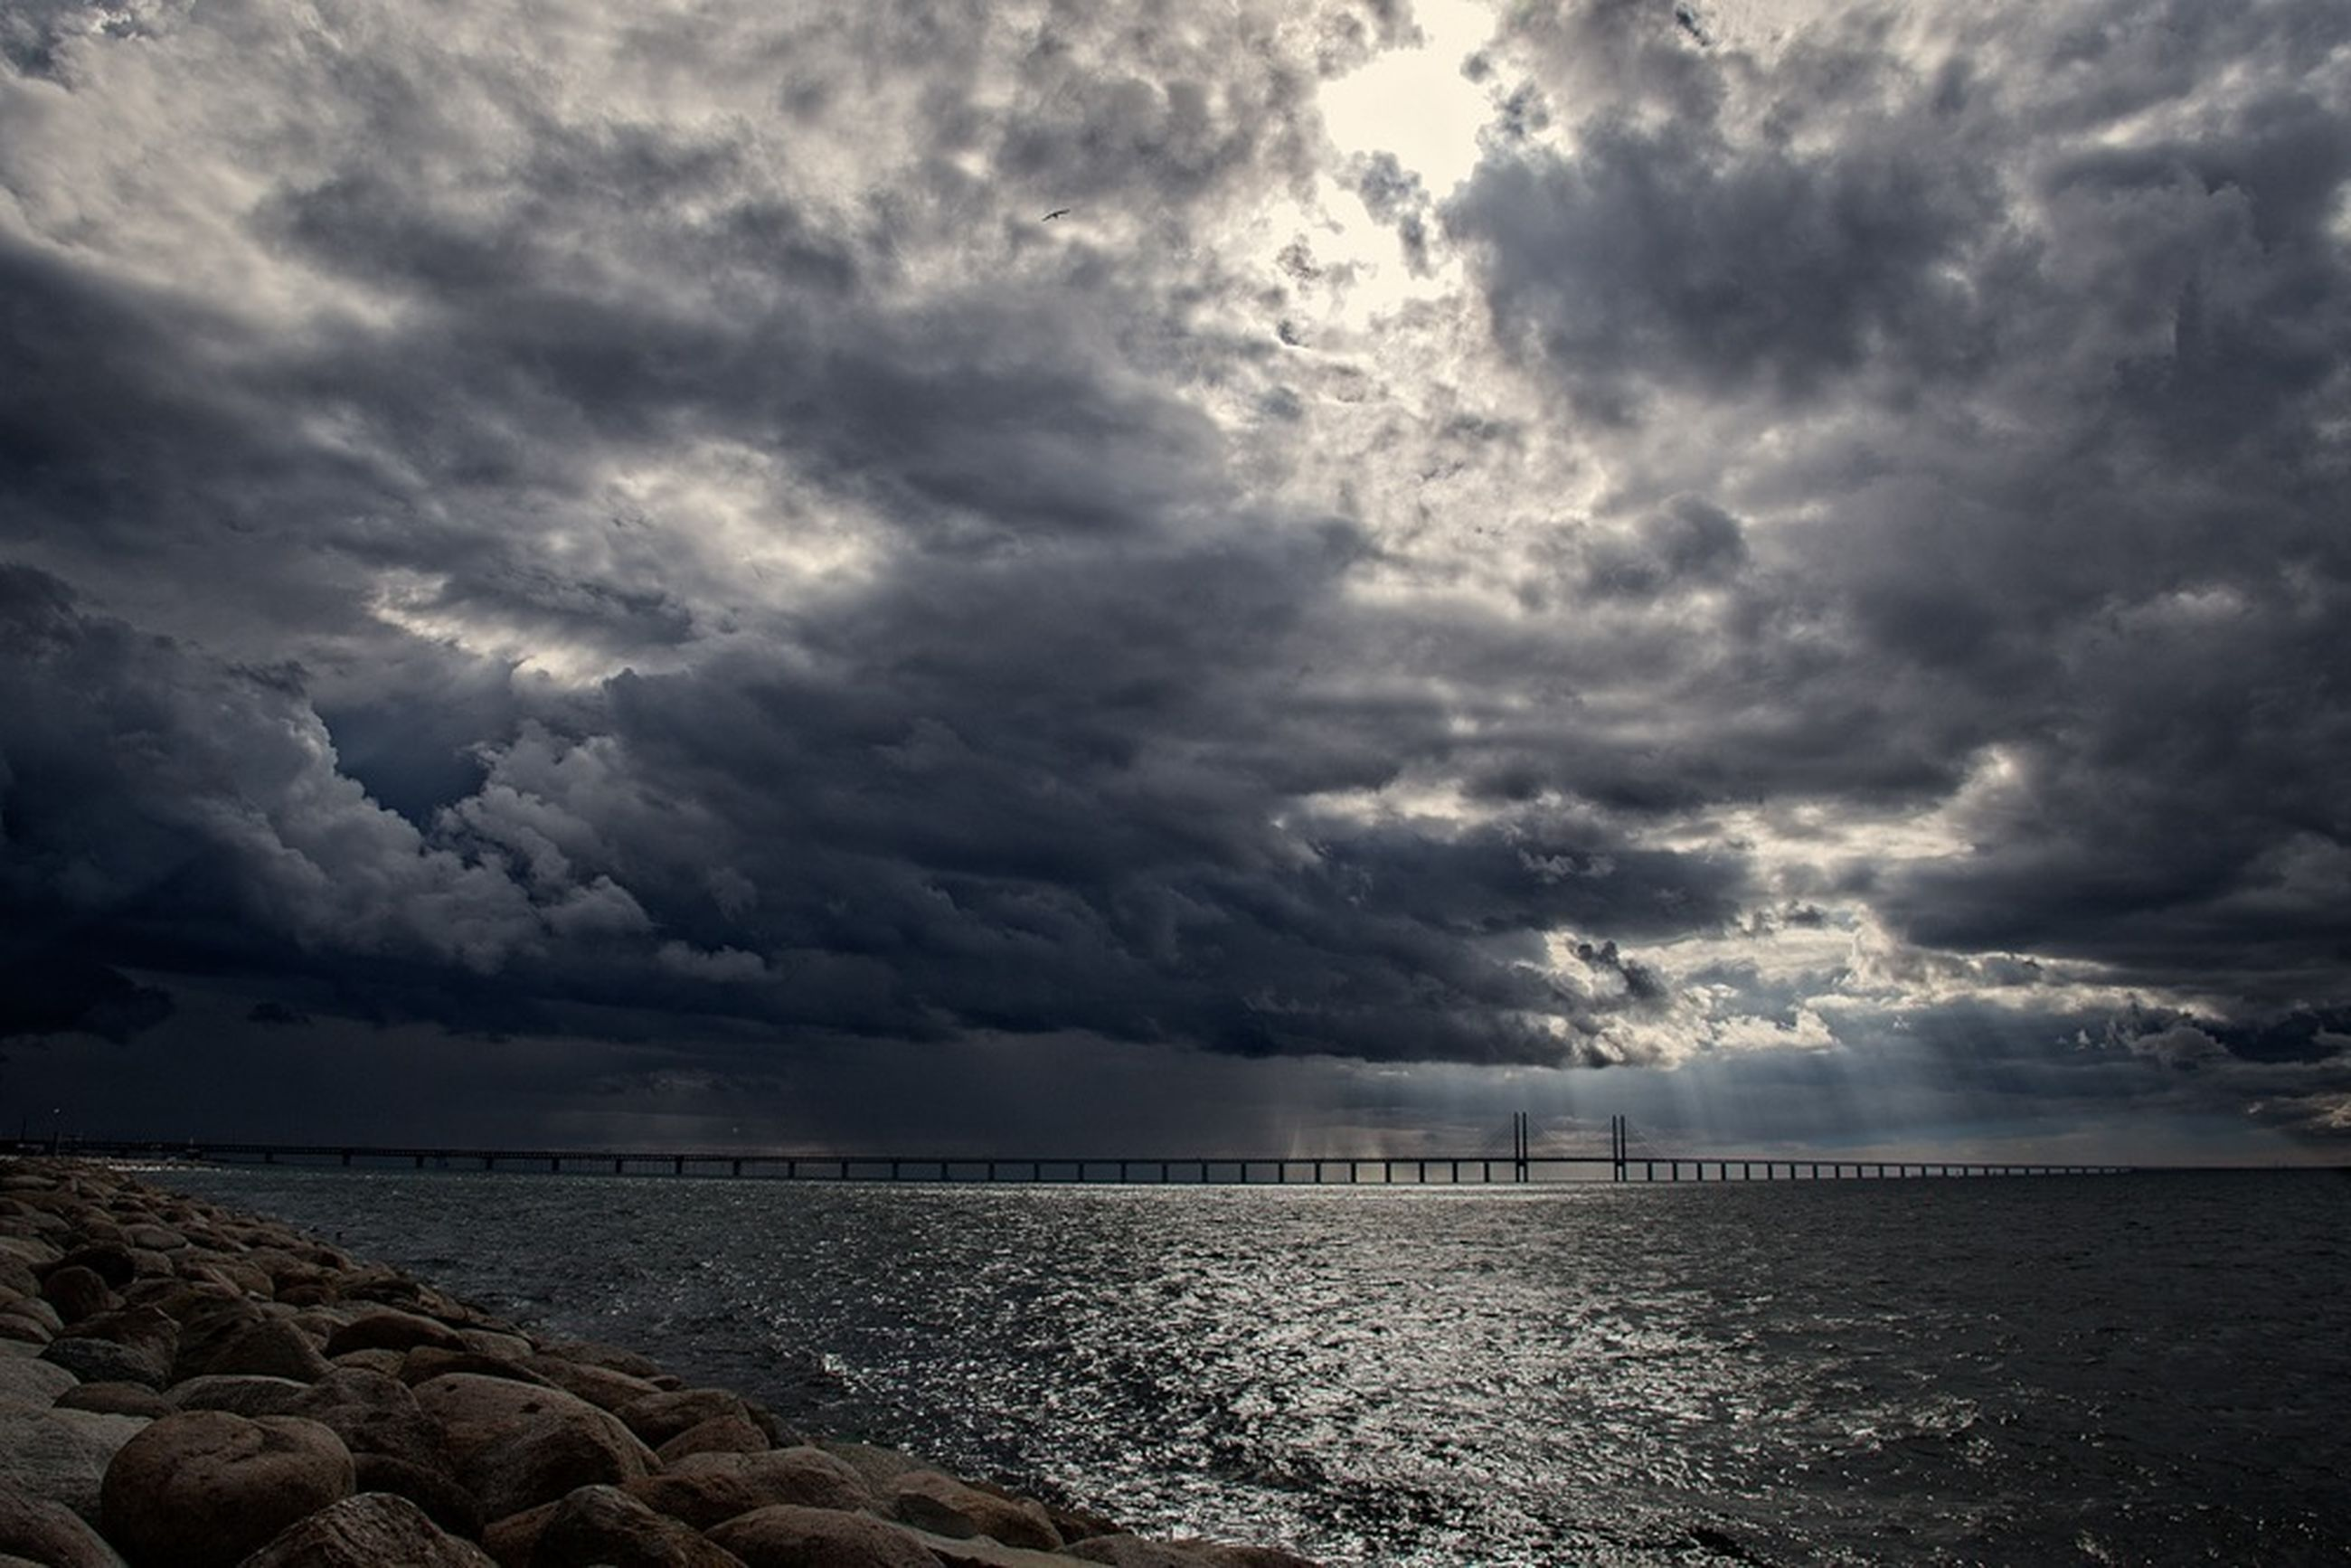 sea, water, sky, cloud - sky, cloudy, scenics, horizon over water, beauty in nature, tranquil scene, tranquility, weather, beach, nature, overcast, shore, storm cloud, rock - object, cloud, idyllic, dramatic sky